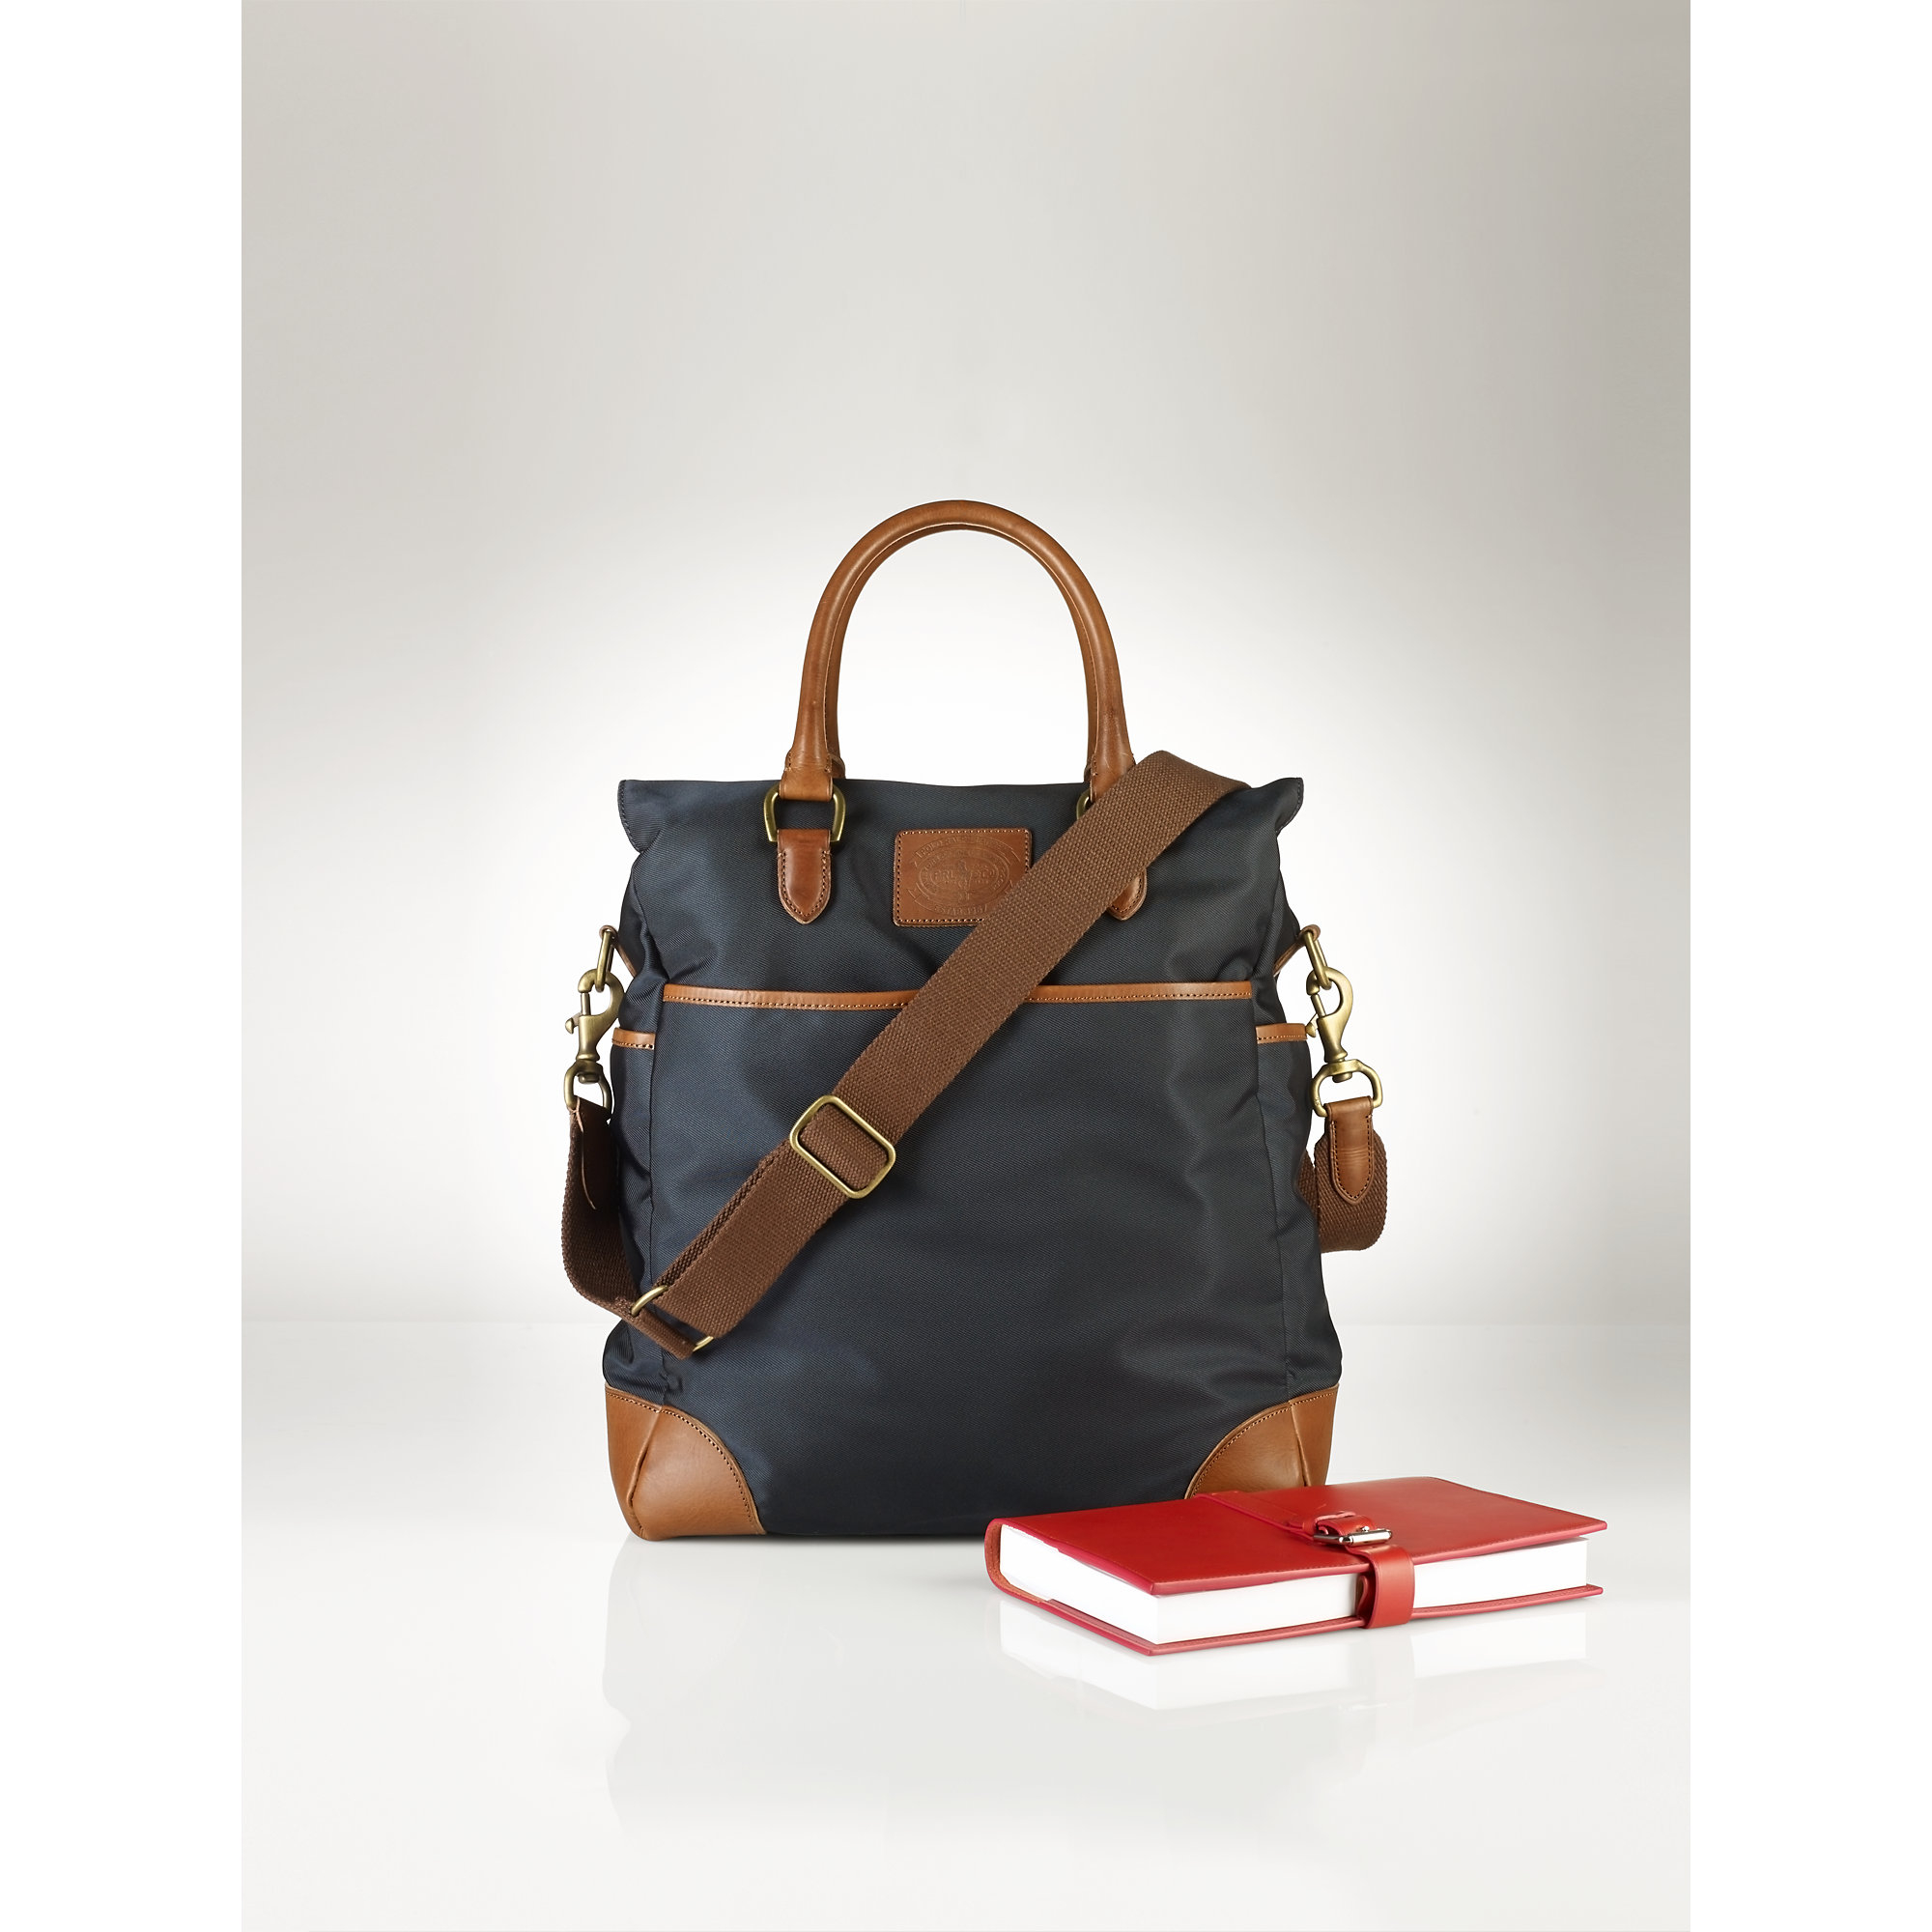 97a4a17c0c Lyst - Polo Ralph Lauren Nylon Tote in Blue for Men